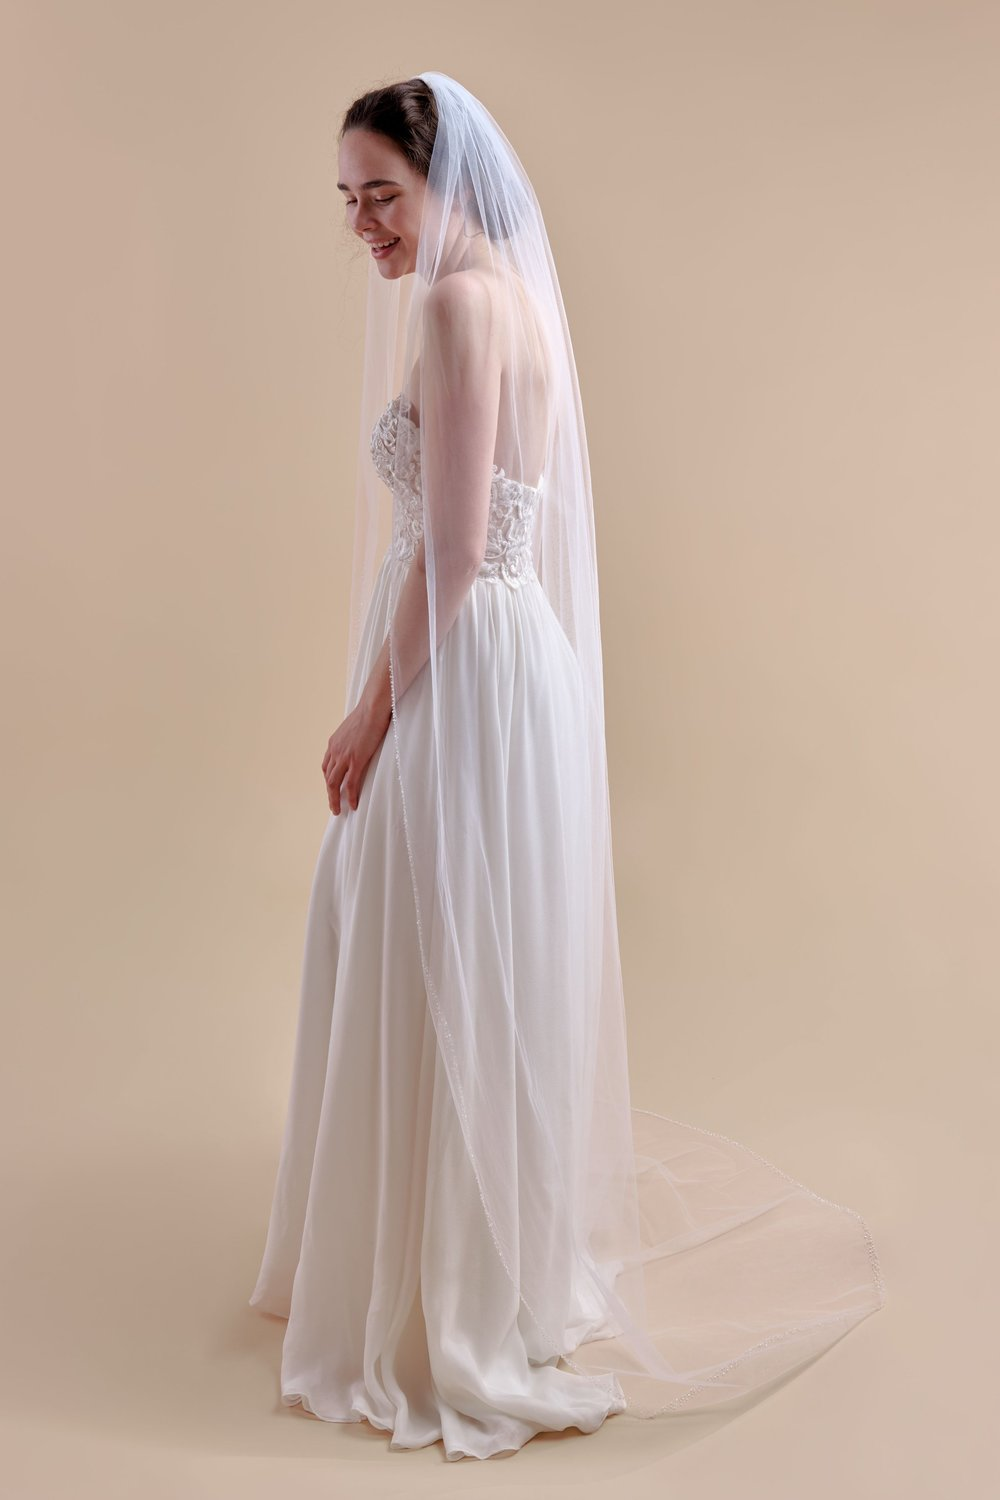 Anomalie, Court Length Veil, Beaded Veil.jpg